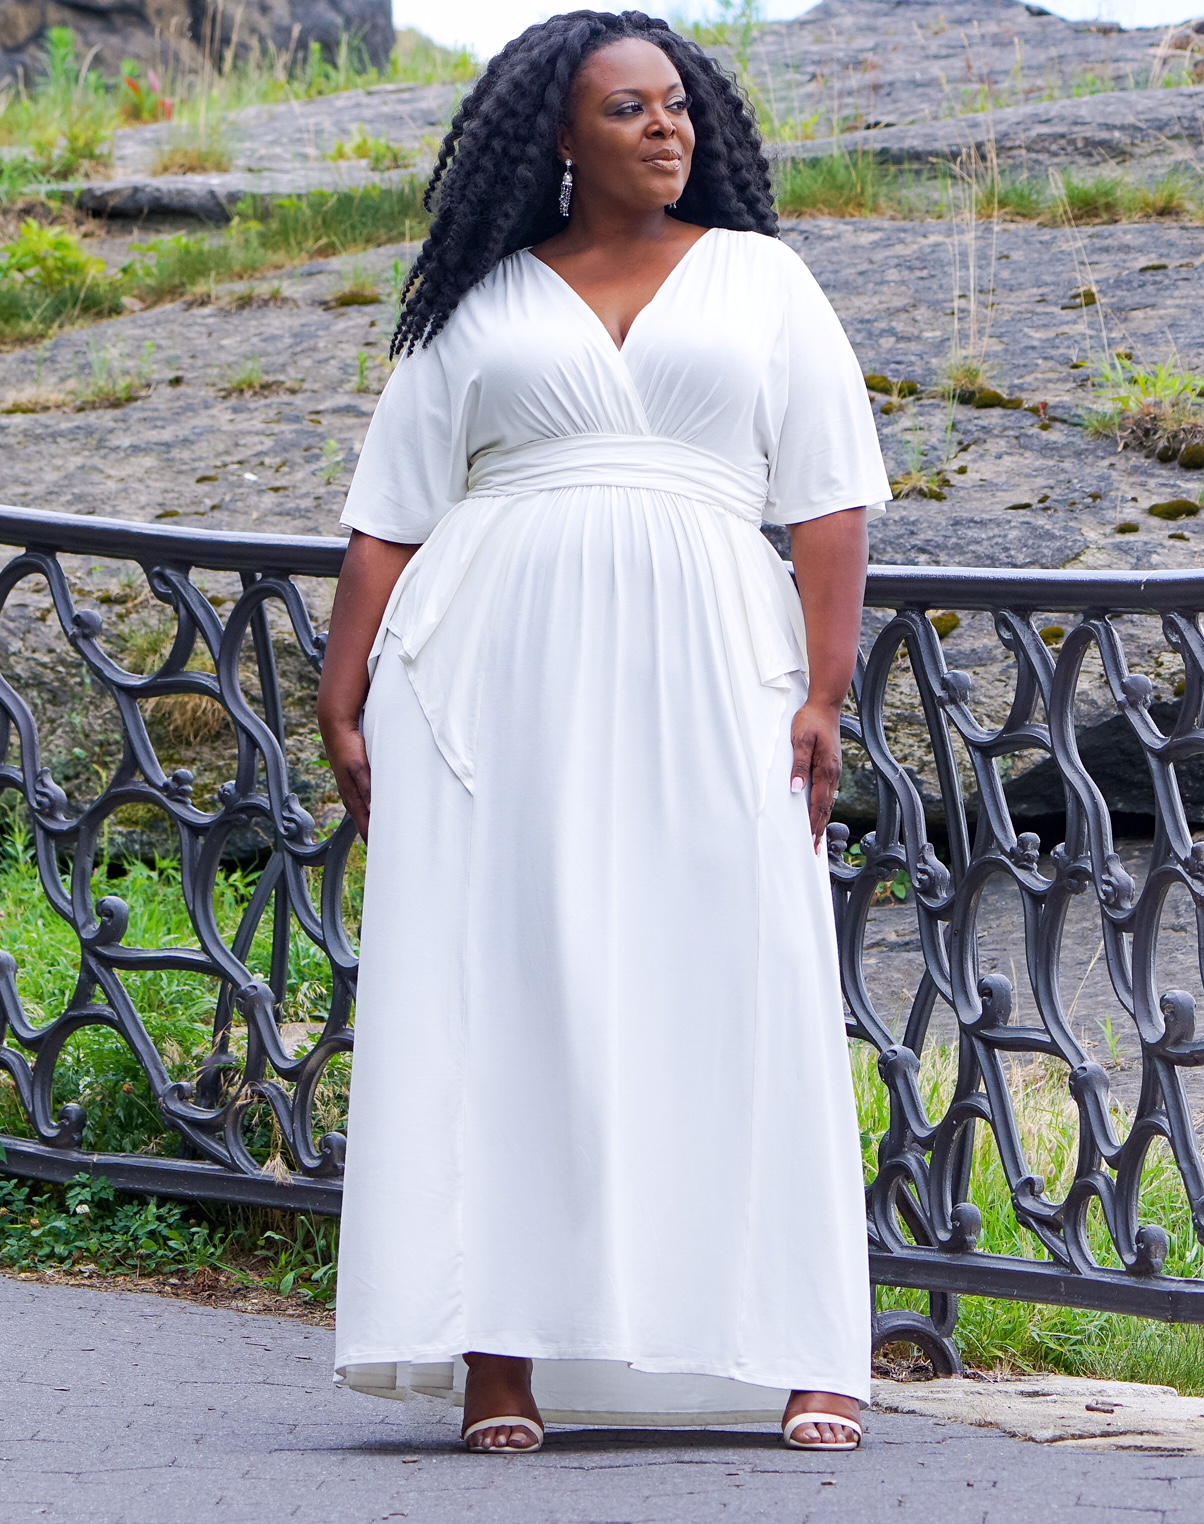 plus size white dress, kiyonna white dress, white plus size dress, plus size maxidress, kiyonna plus size dress